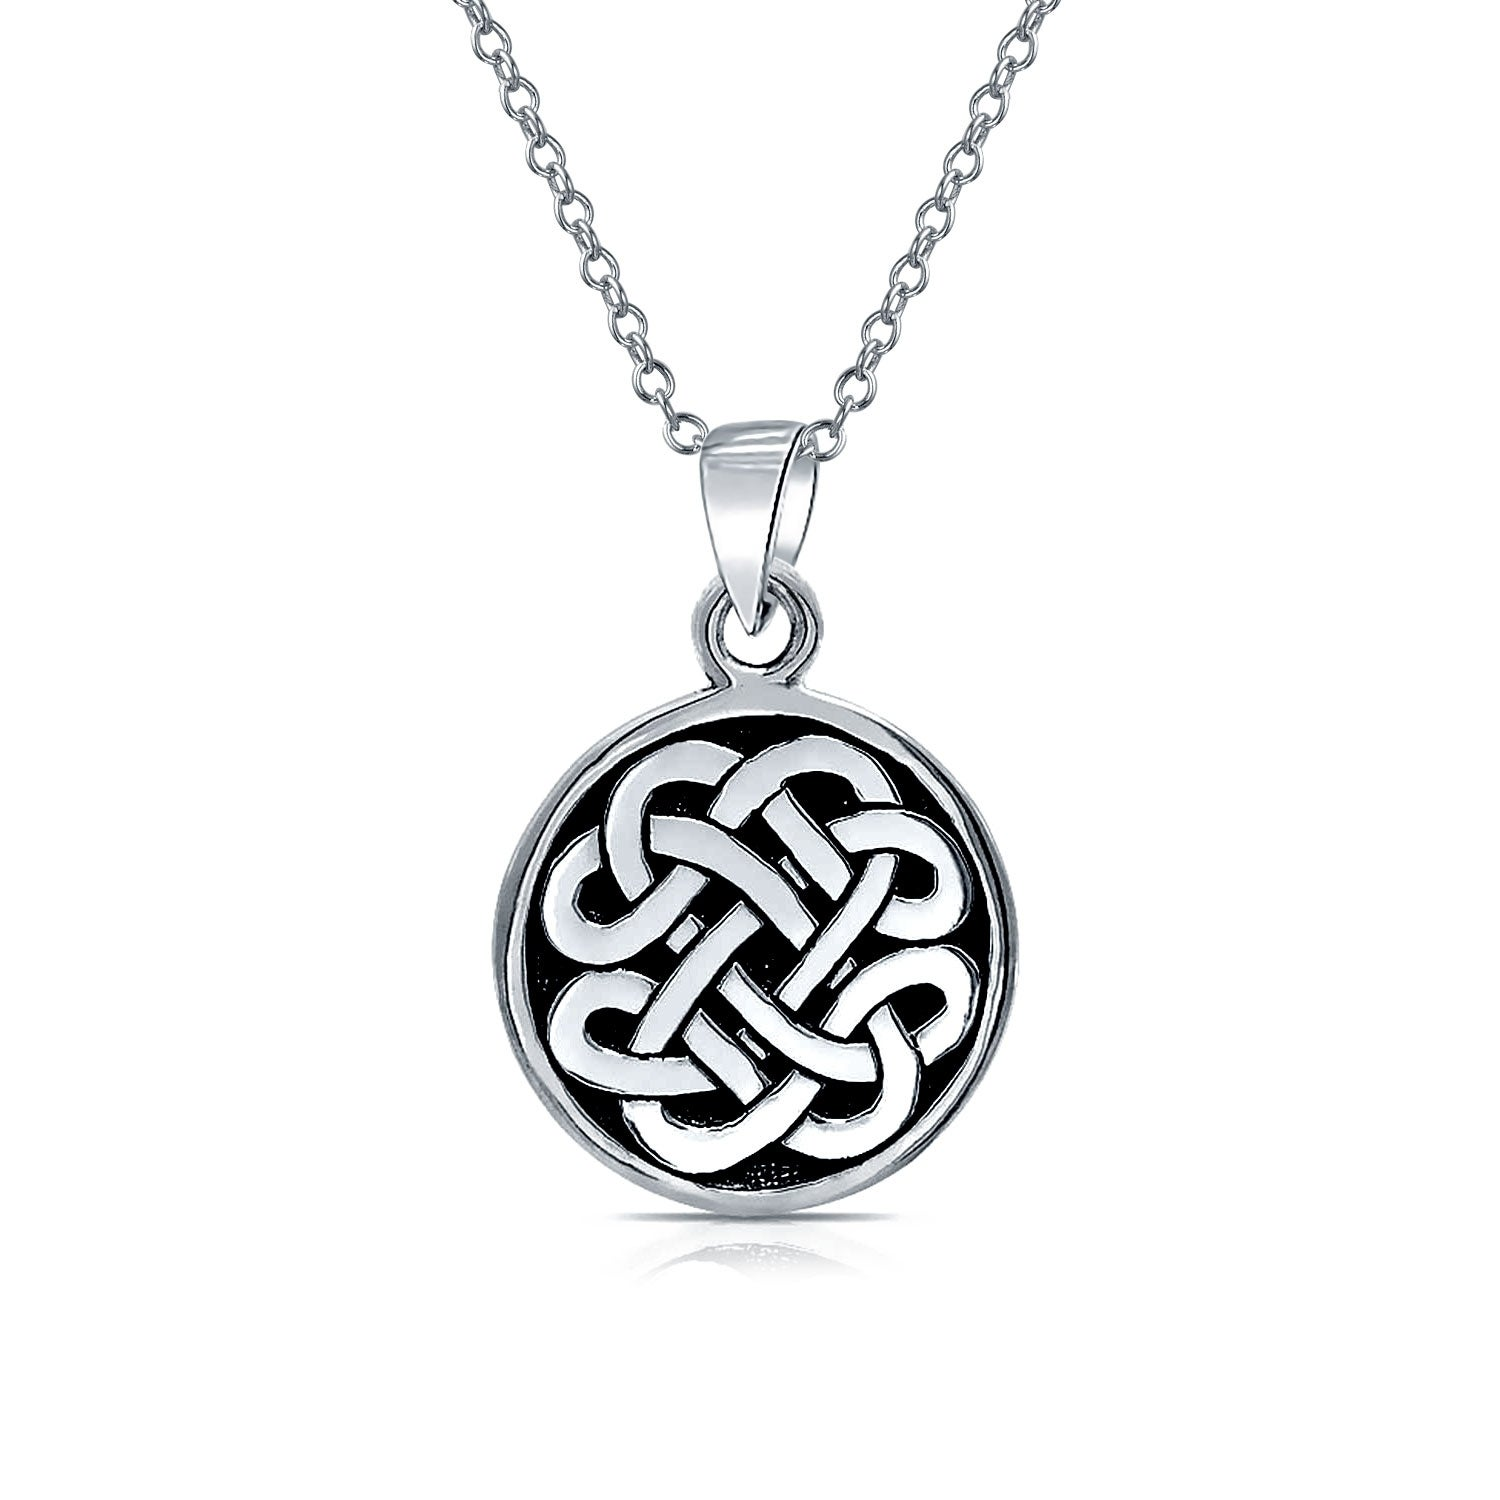 99d6d36989579 Celtic Knot Irish Friendship Round Circle Medallion Shield Pendant Sterling  Silver Necklace For Women Men 18 In Chain